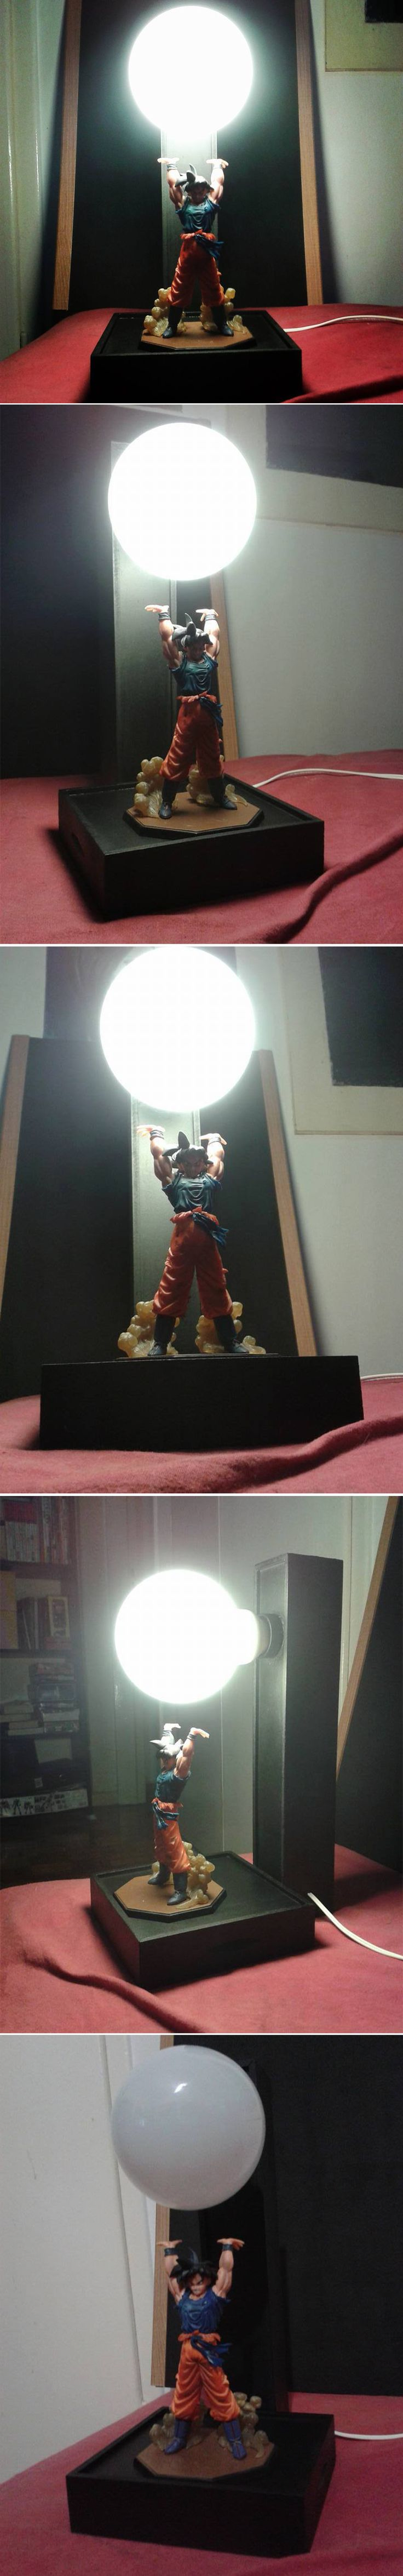 Incredible Dragon Ball Z Goku Lamp